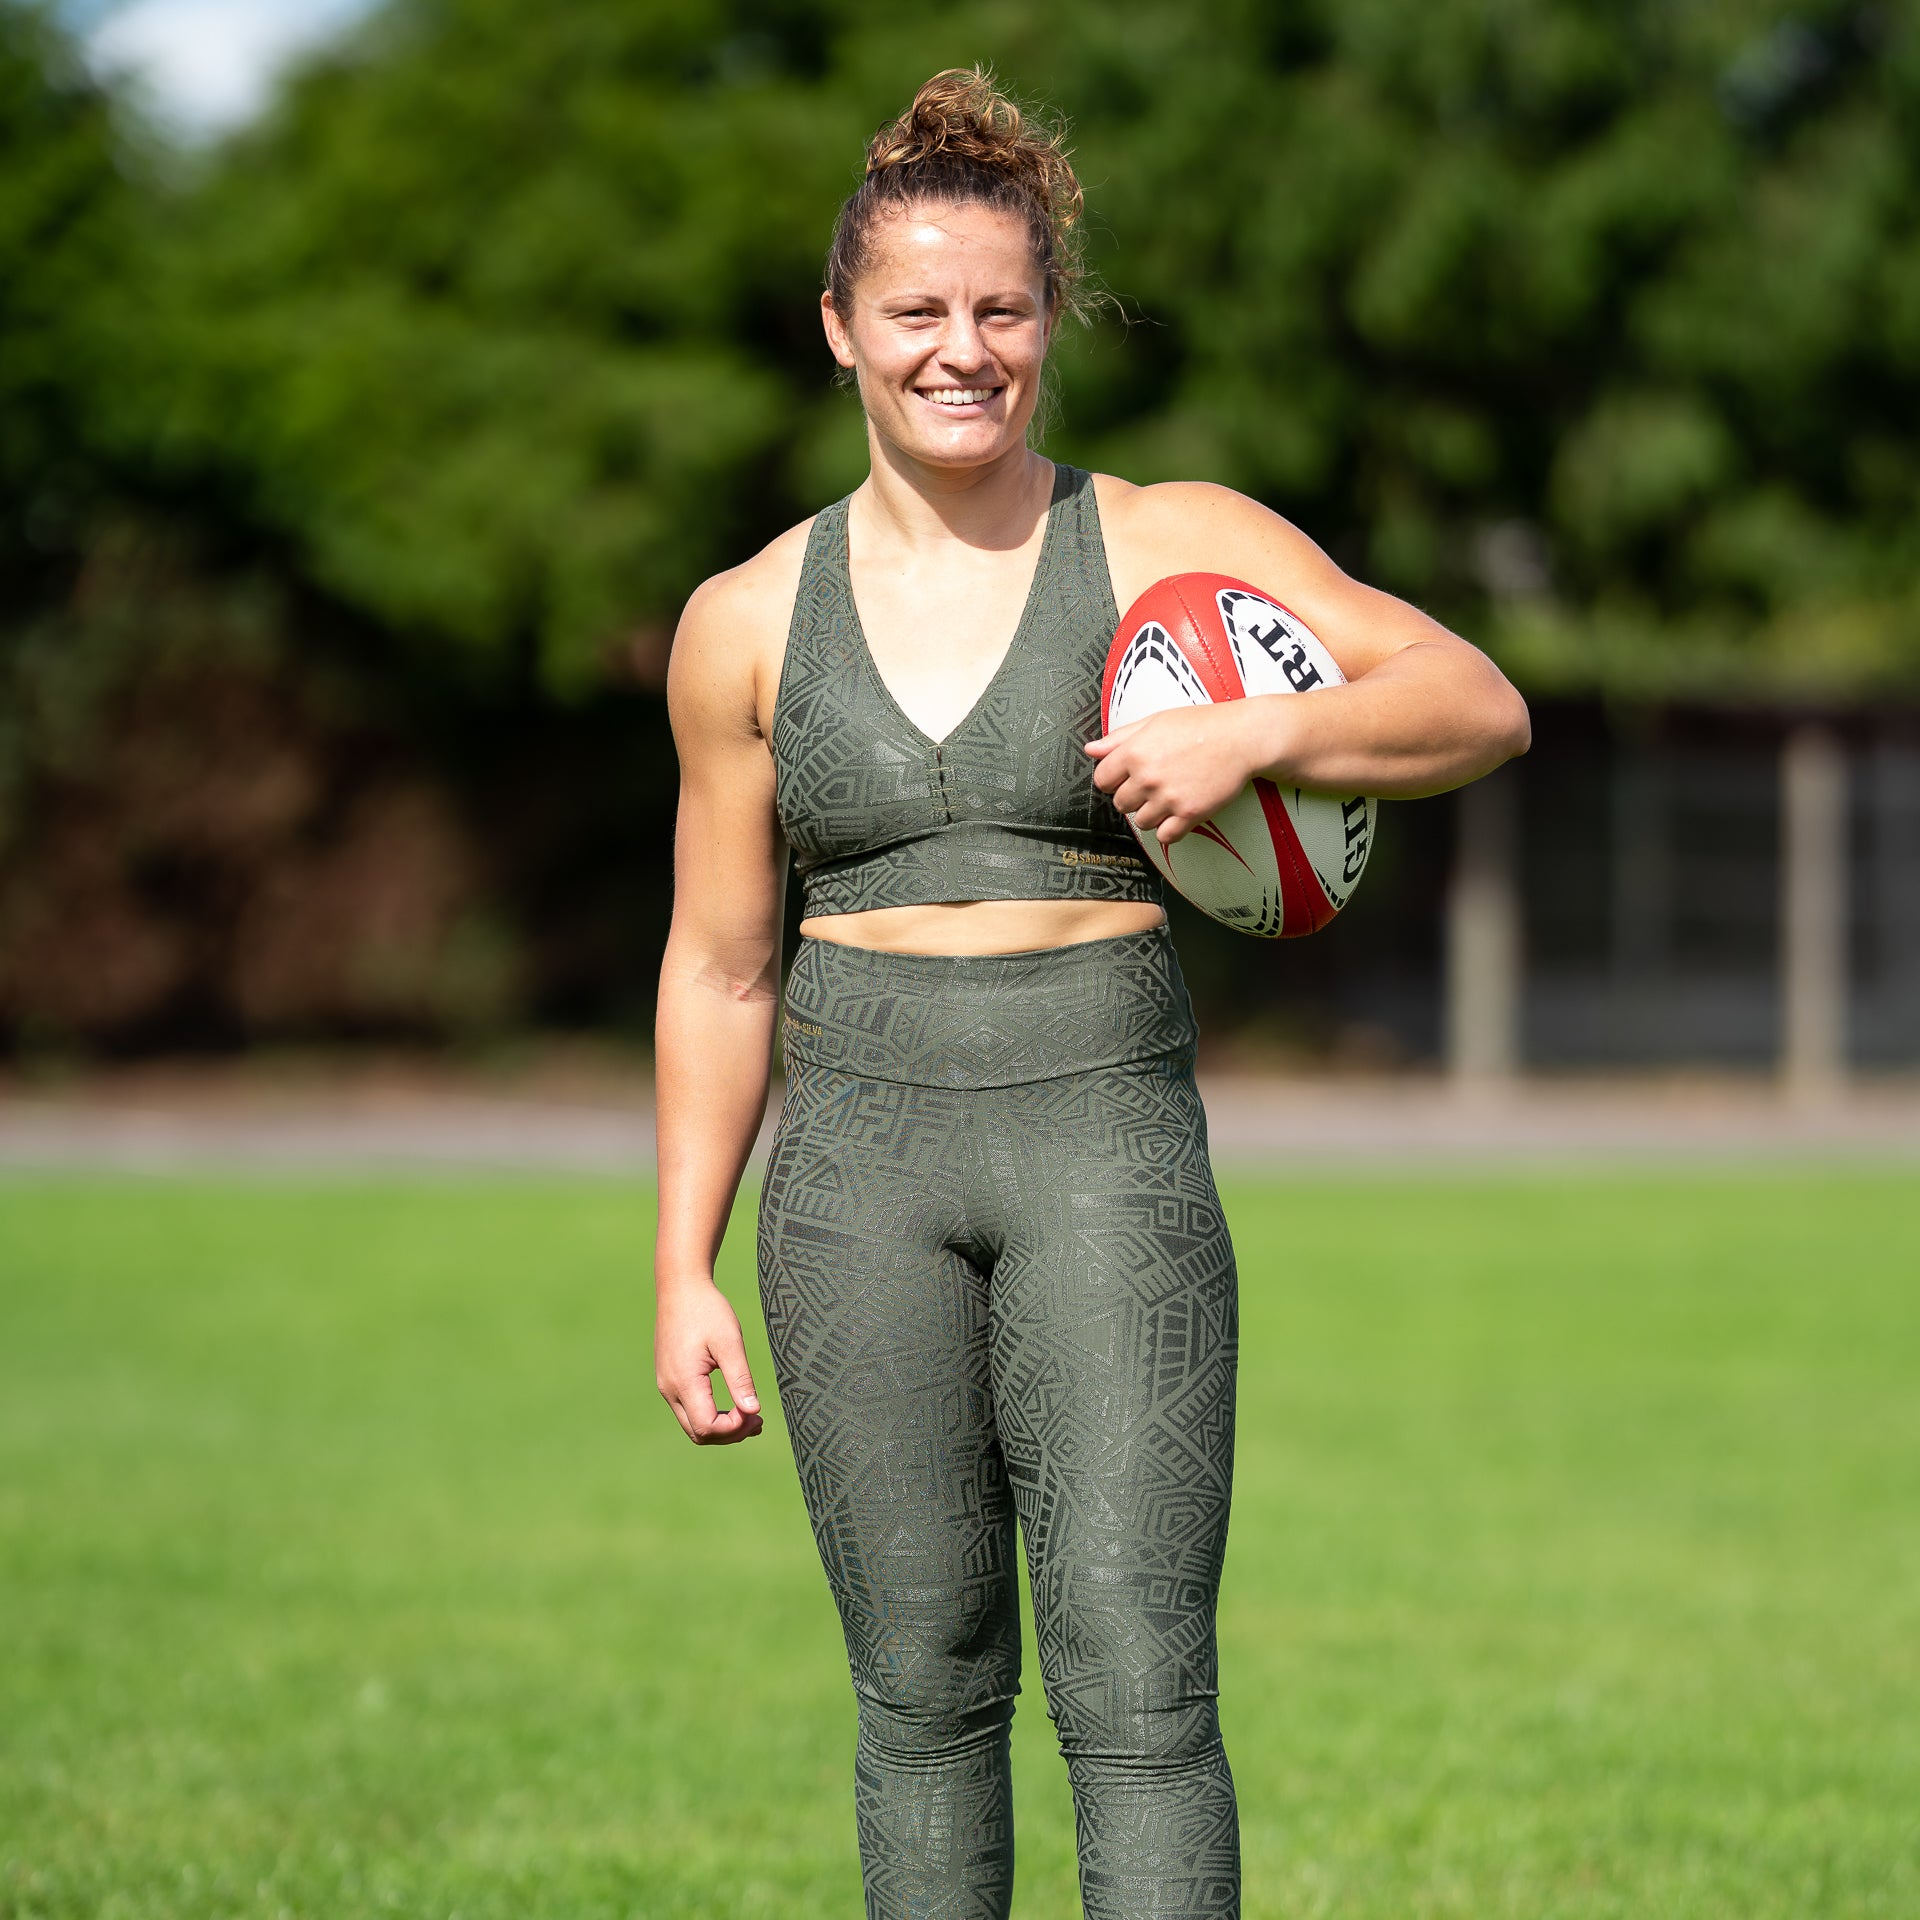 A fit lady with brown curly hair standing on a rugby pitch wearing khaki green leggings and a sports bra from the Sara Da Silva tribe collection.